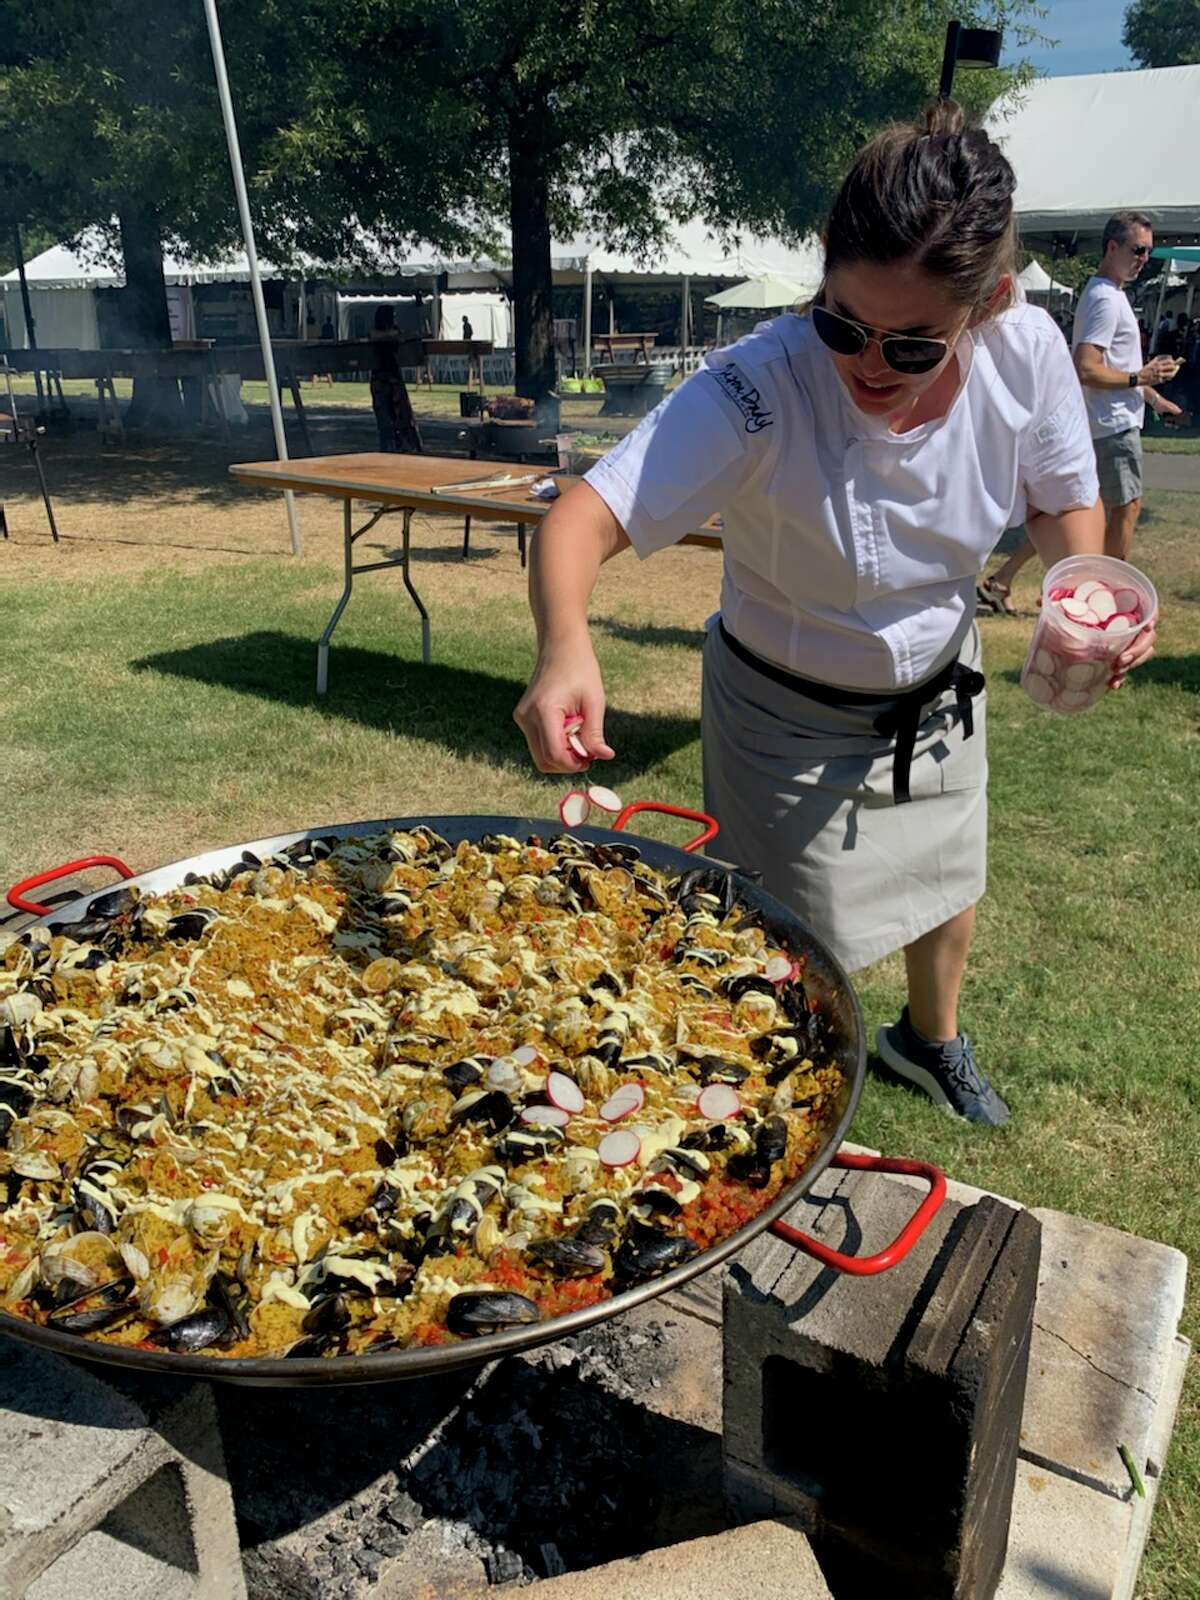 Chef Margeaux Alcorta, the director of culinary operations for the Jason Dady Restaurant Group, competed on